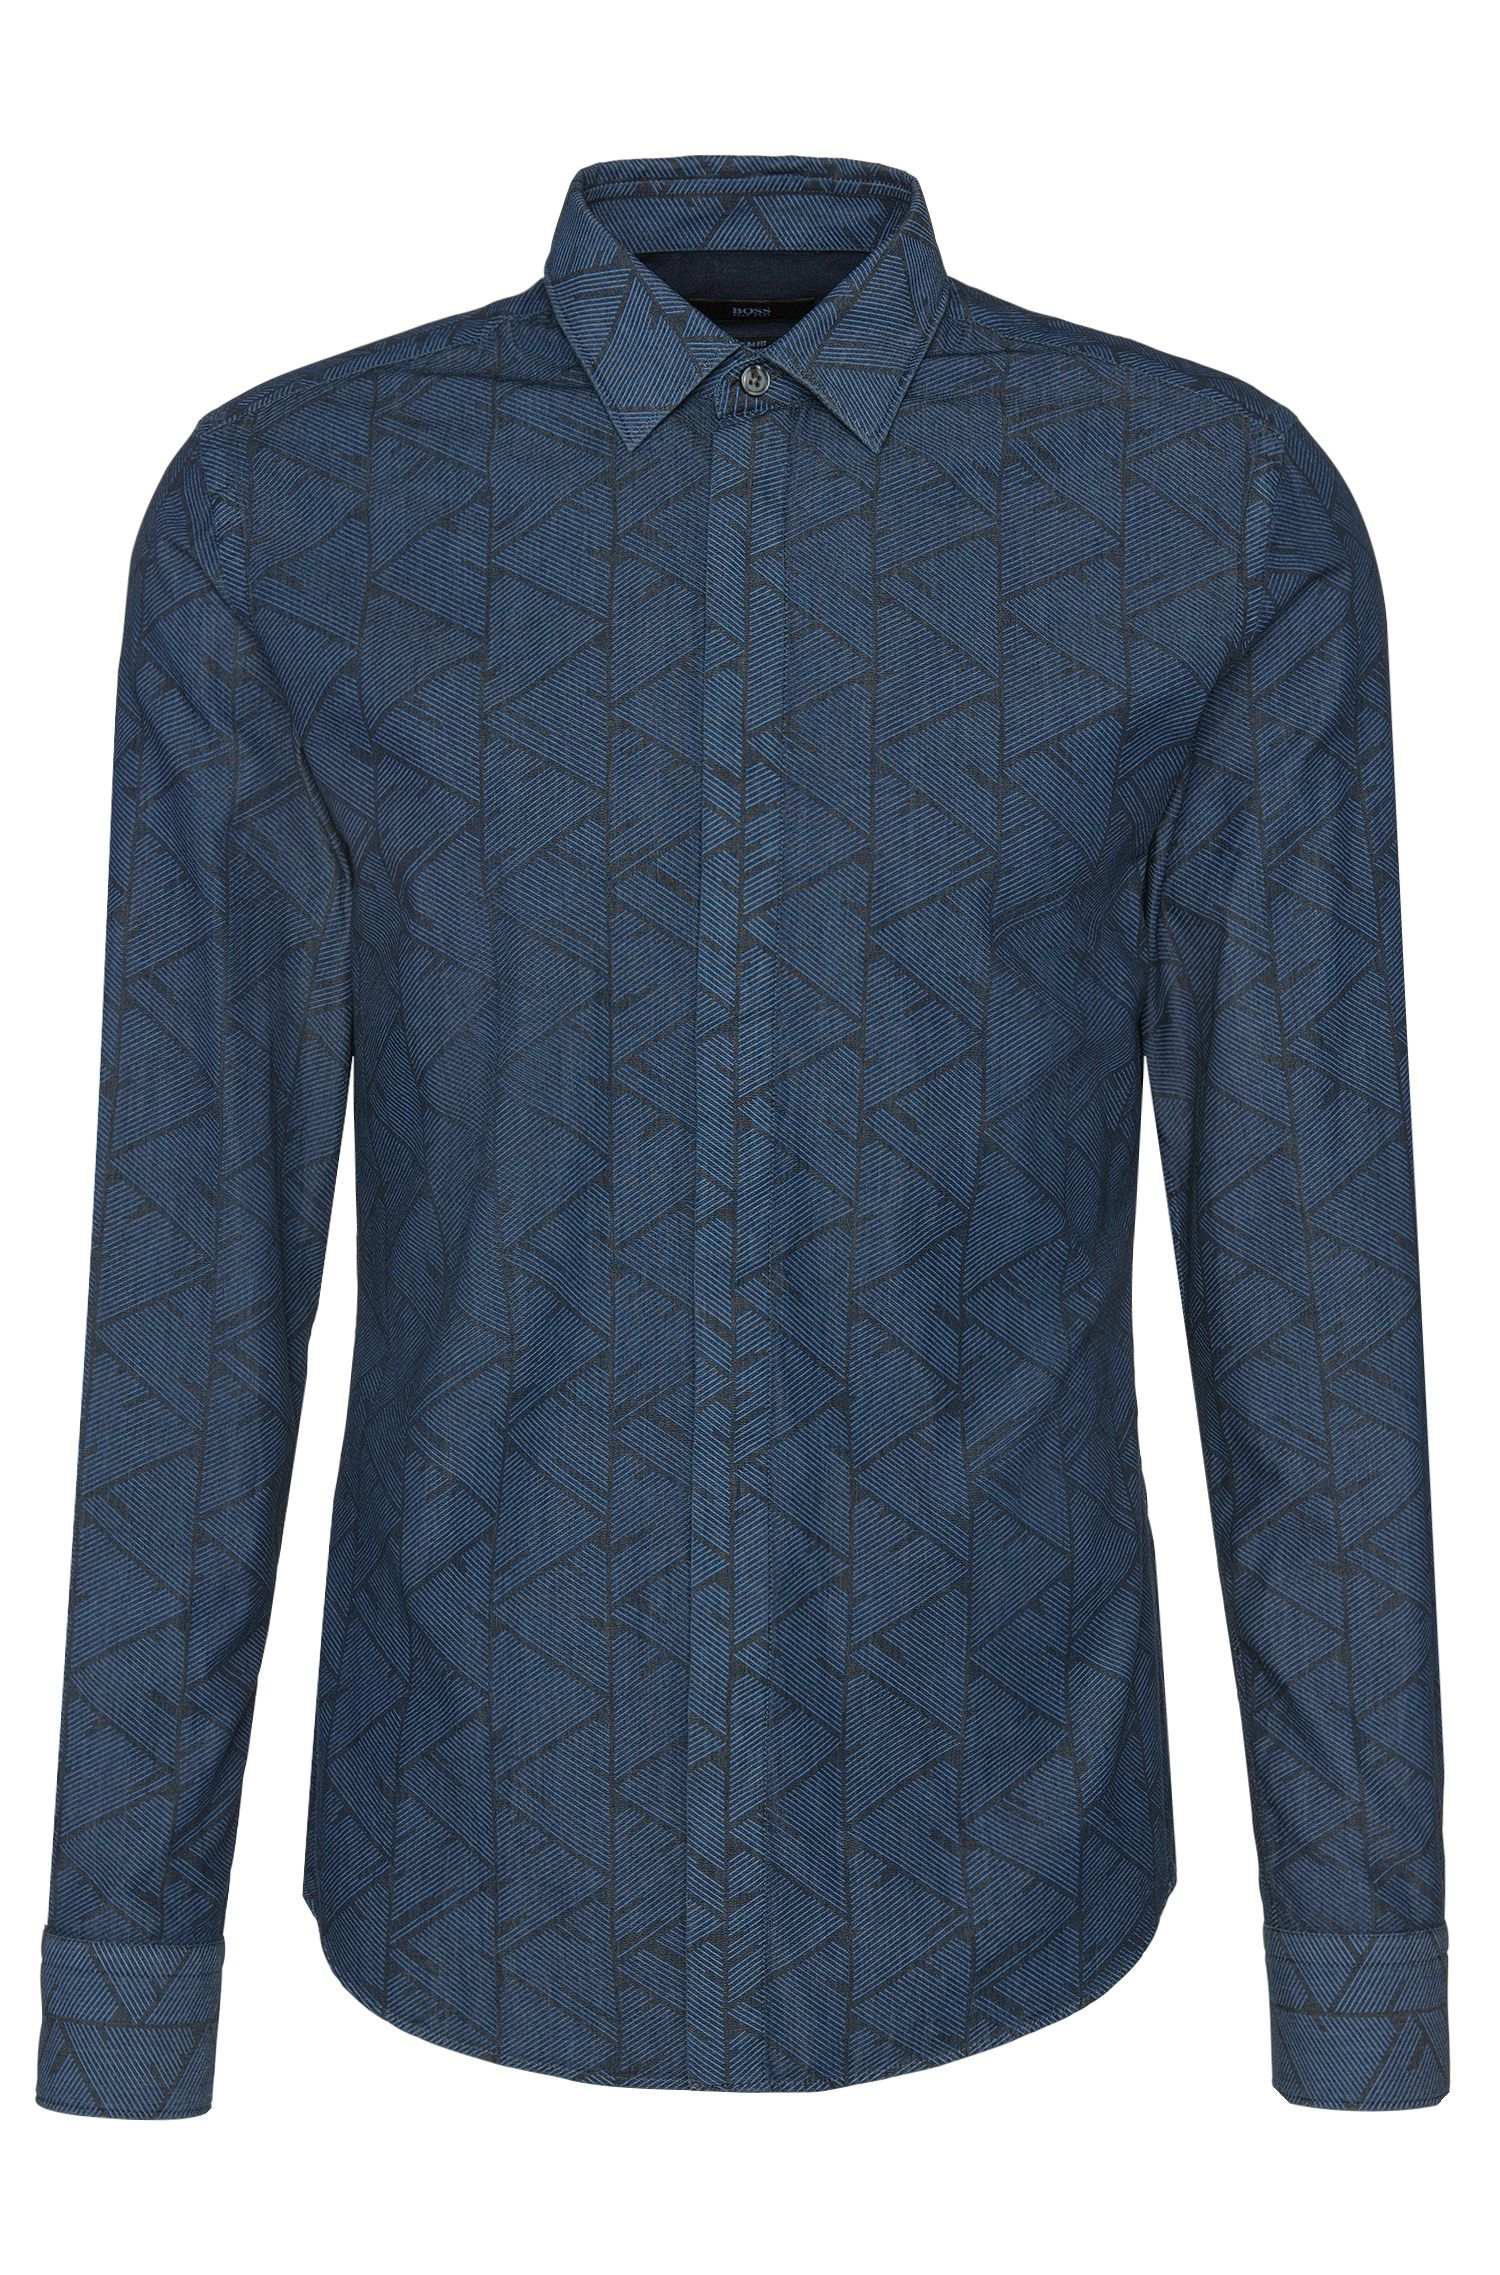 'Reid' | Slim Fit, Italian Cotton Abstract Button Down Shirt